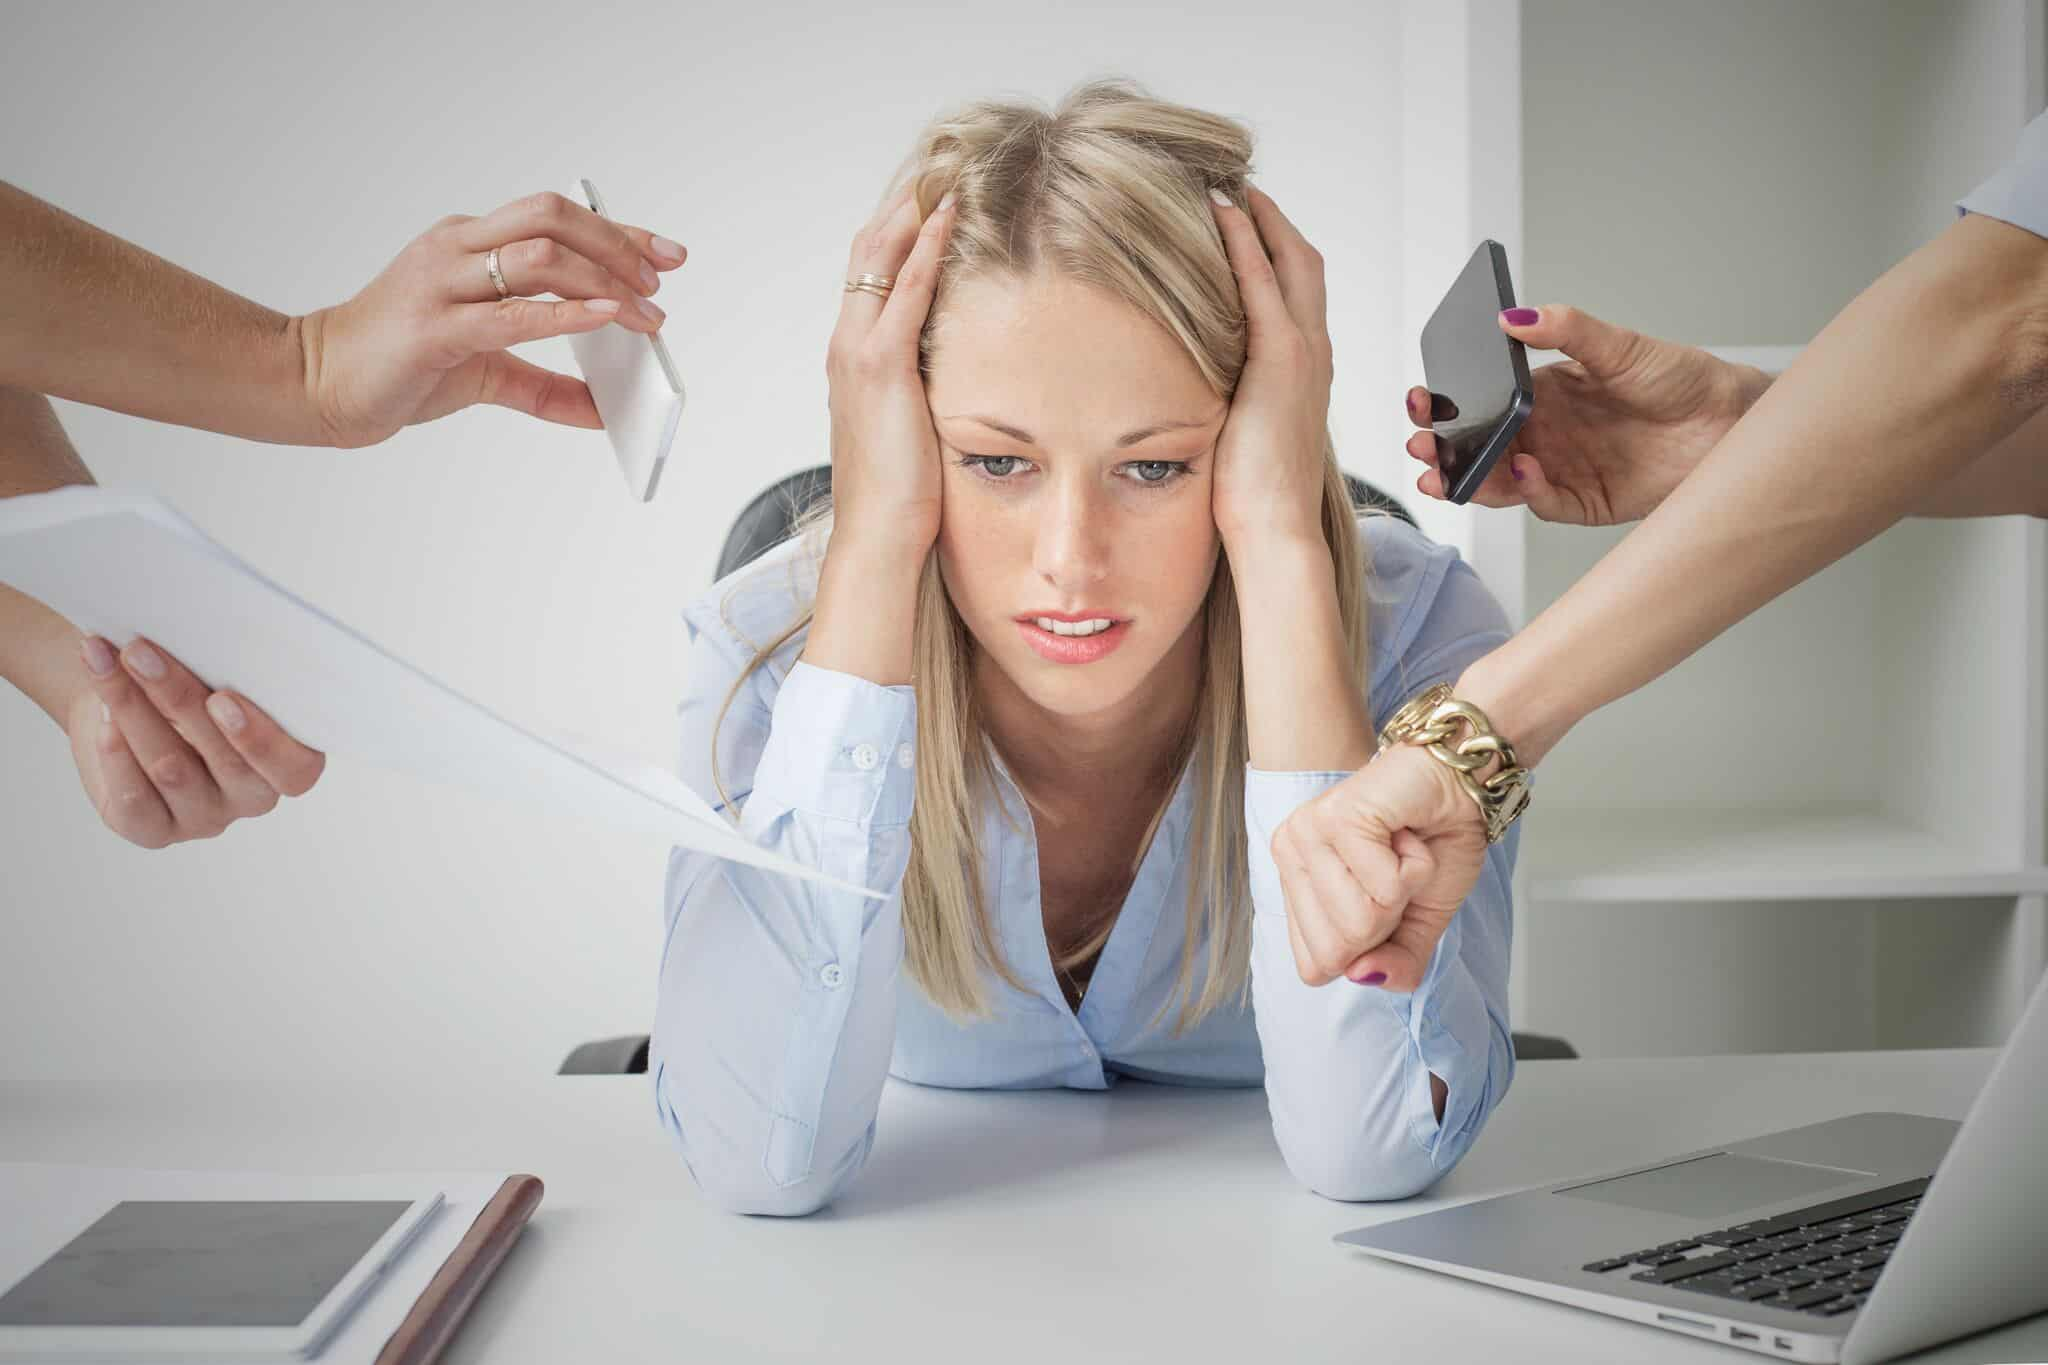 It's hard to handle stress after a divorce.